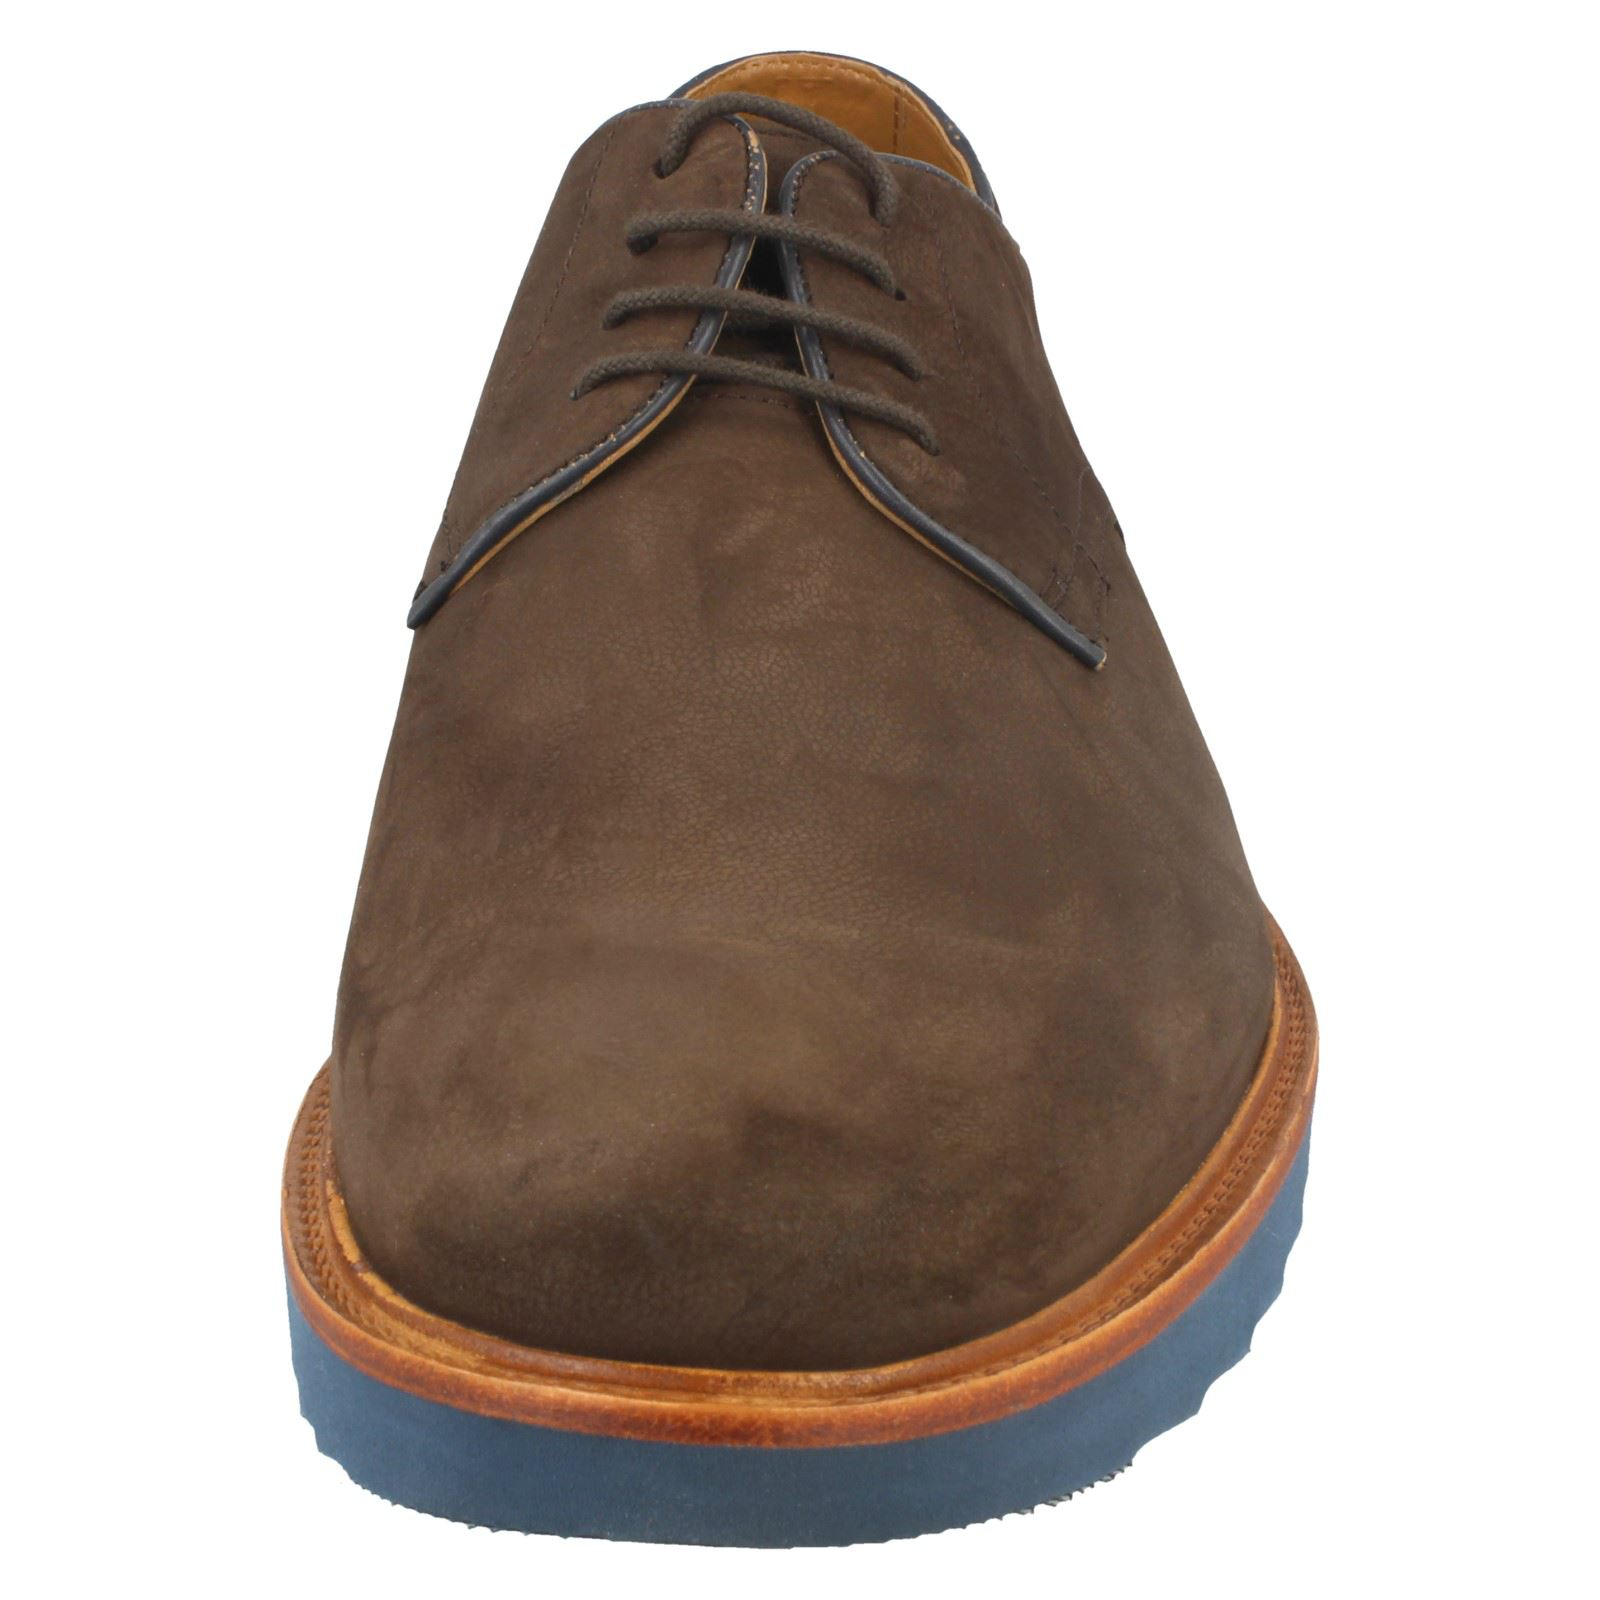 Clarks-Mens-Lace-Up-Shoes-Fulham-Walk